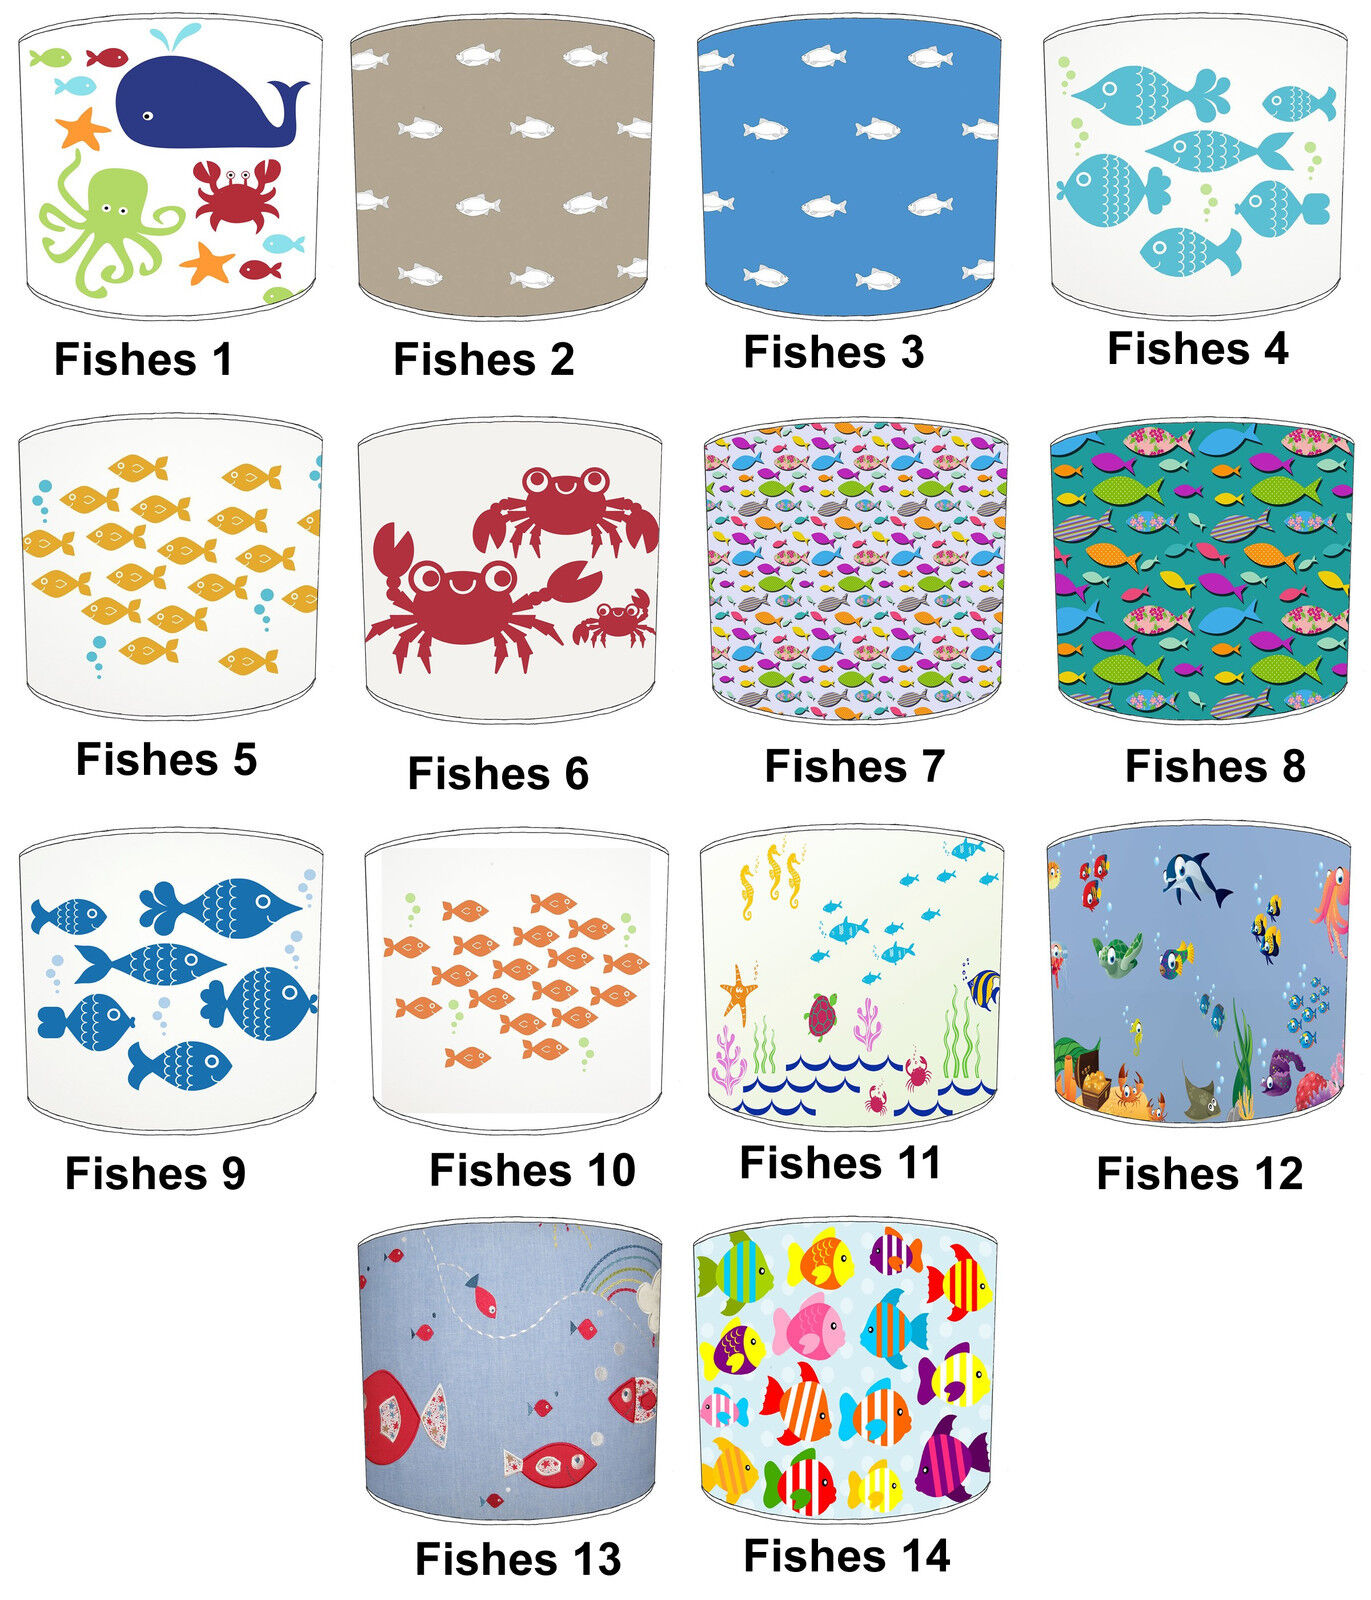 Ideal To Match Submarines Duvets Details about  /Submarines Lampshades Quilts /& Bedspreads